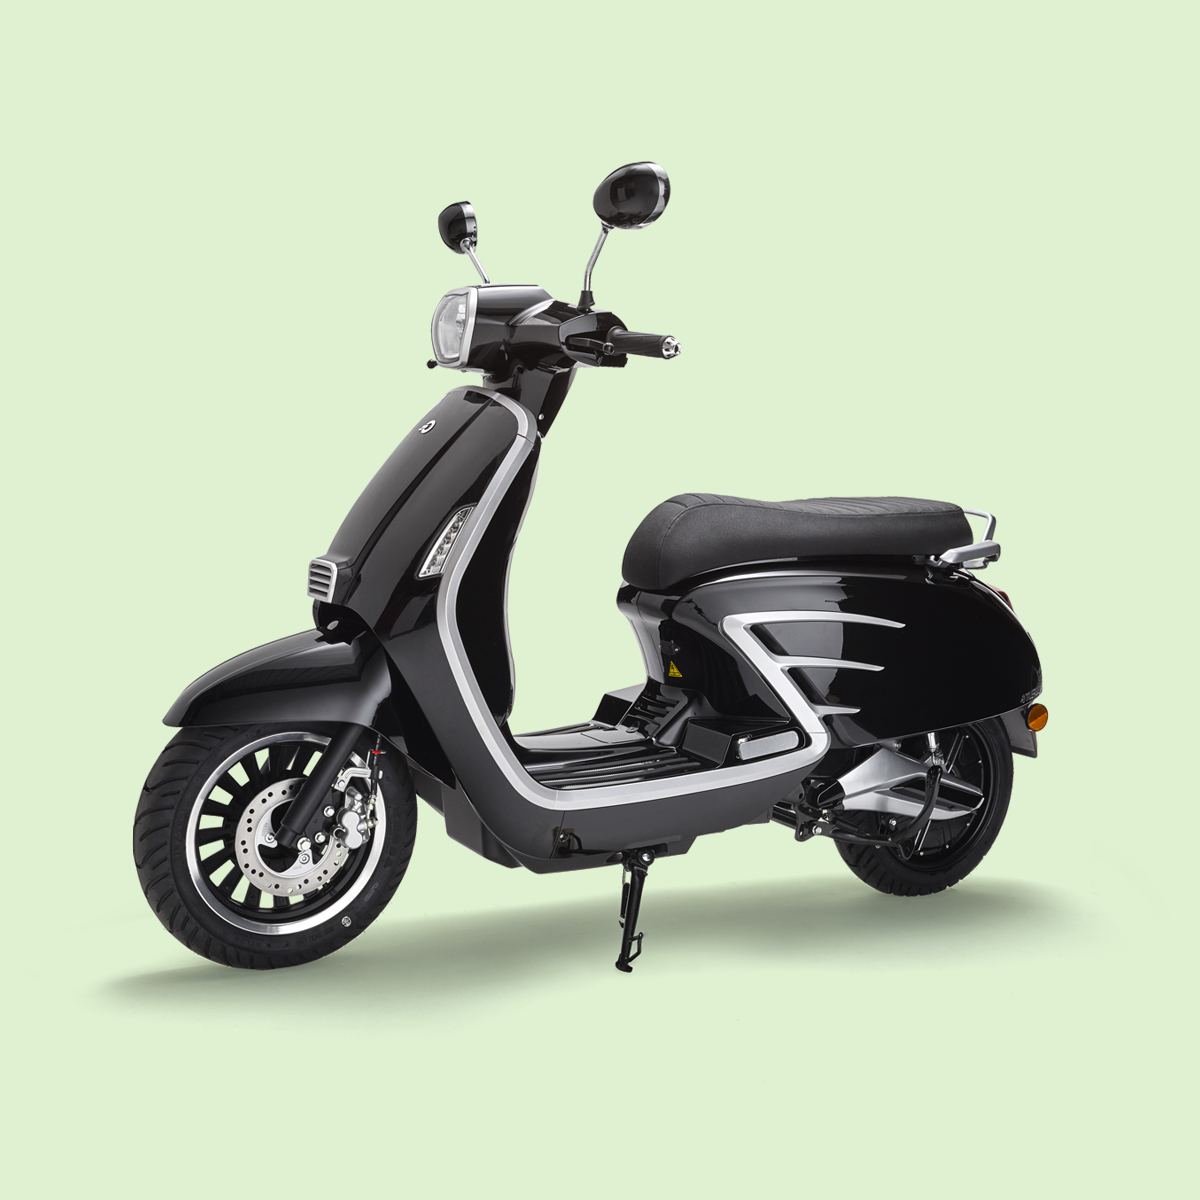 tilscoot-new-euroscoot-vue-3-4